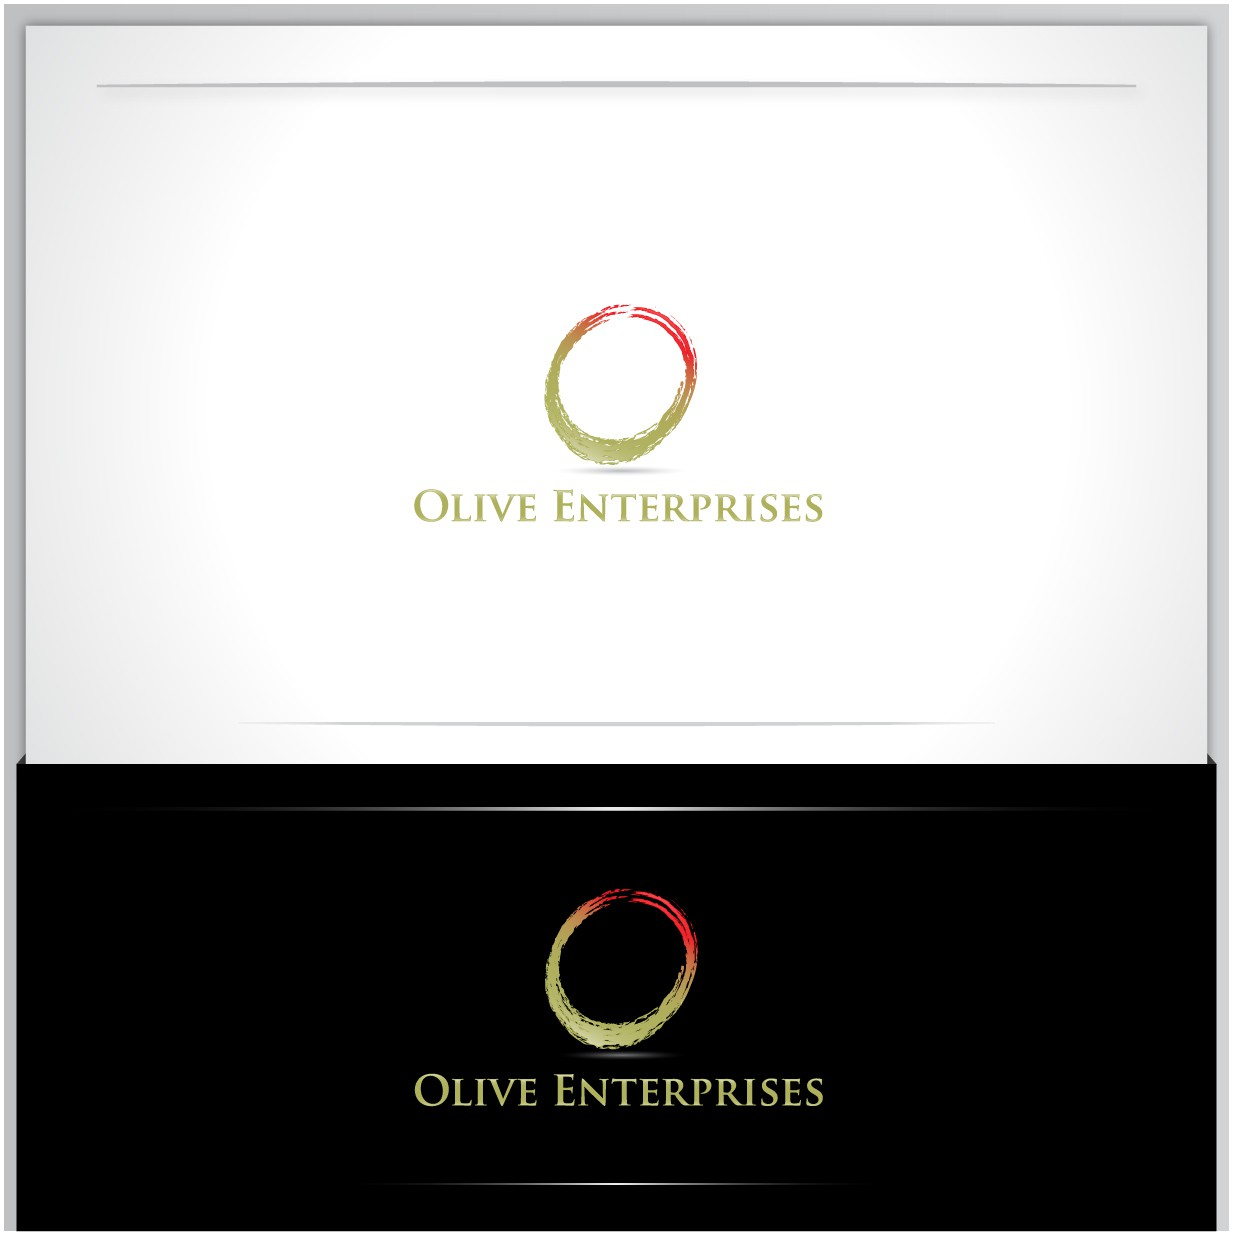 Please design an eye catching corporate logo for my new business